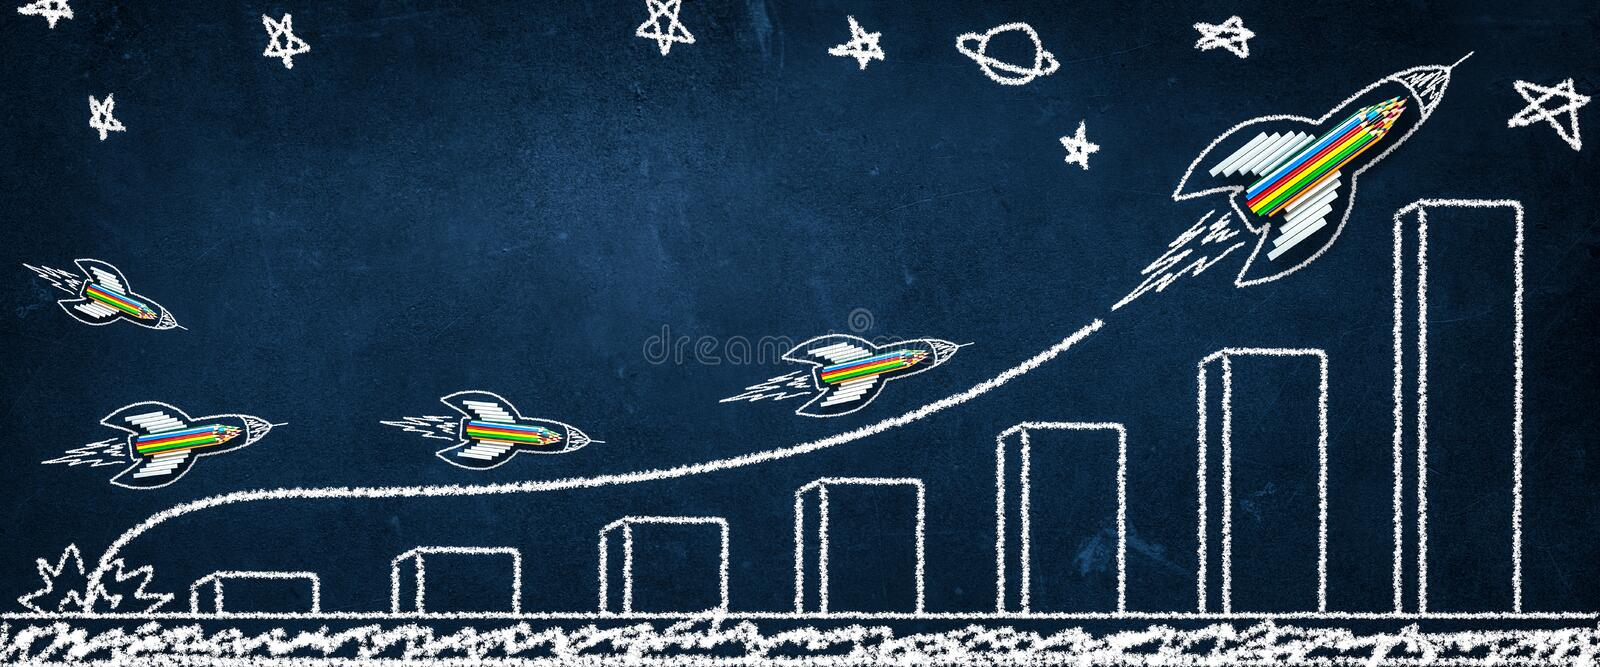 Rocket Made From Pencils And Chalk Leading Others Up Growth Chart Drawing royalty free stock image